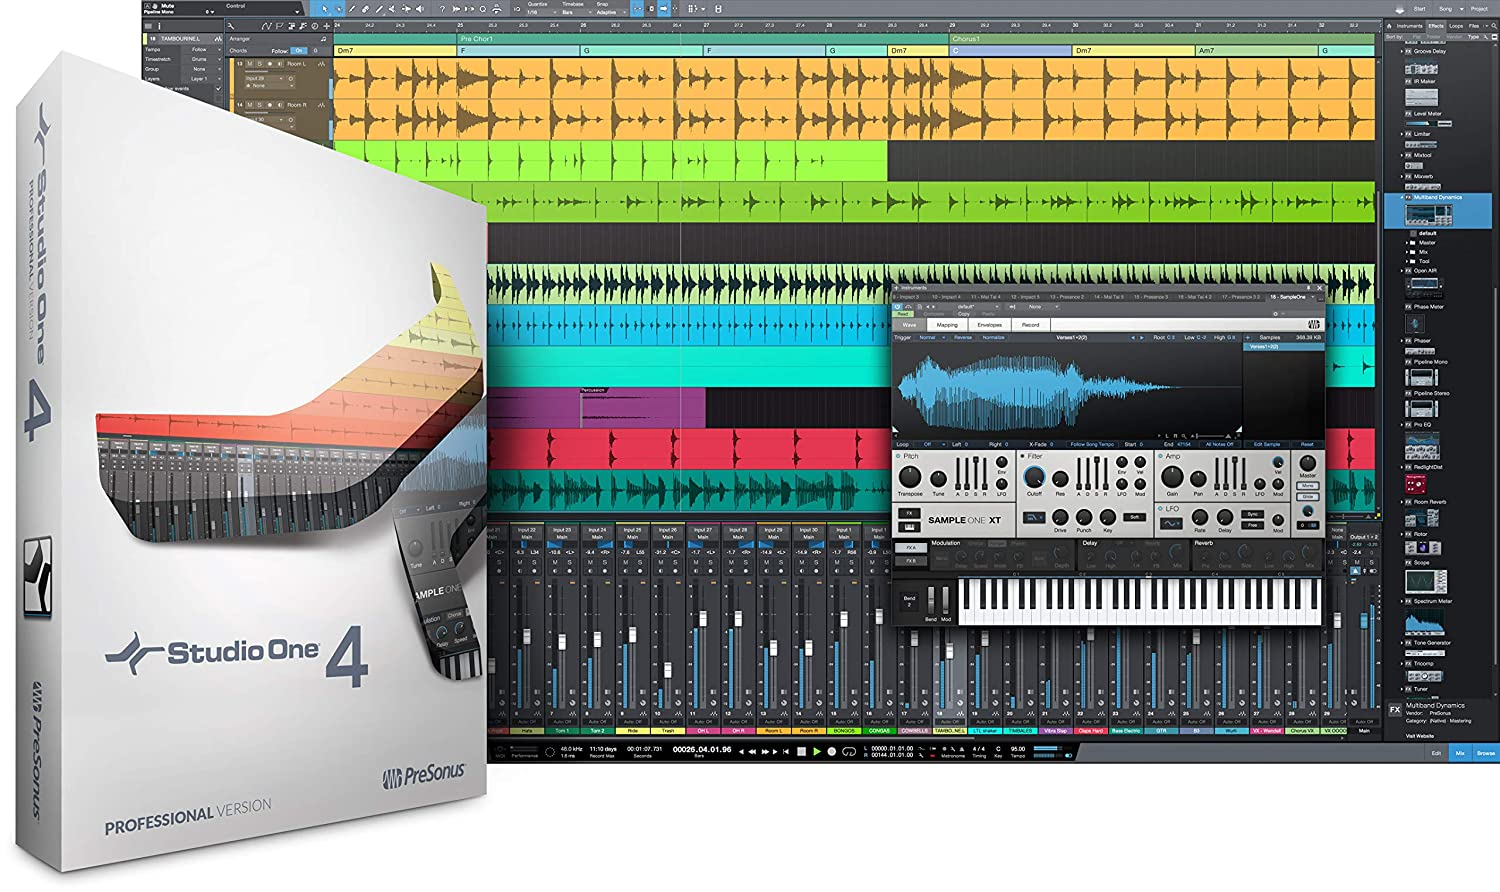 Top 10 Best Music Production Software - DAWs (2020 Reviews & Buying Guide) 5